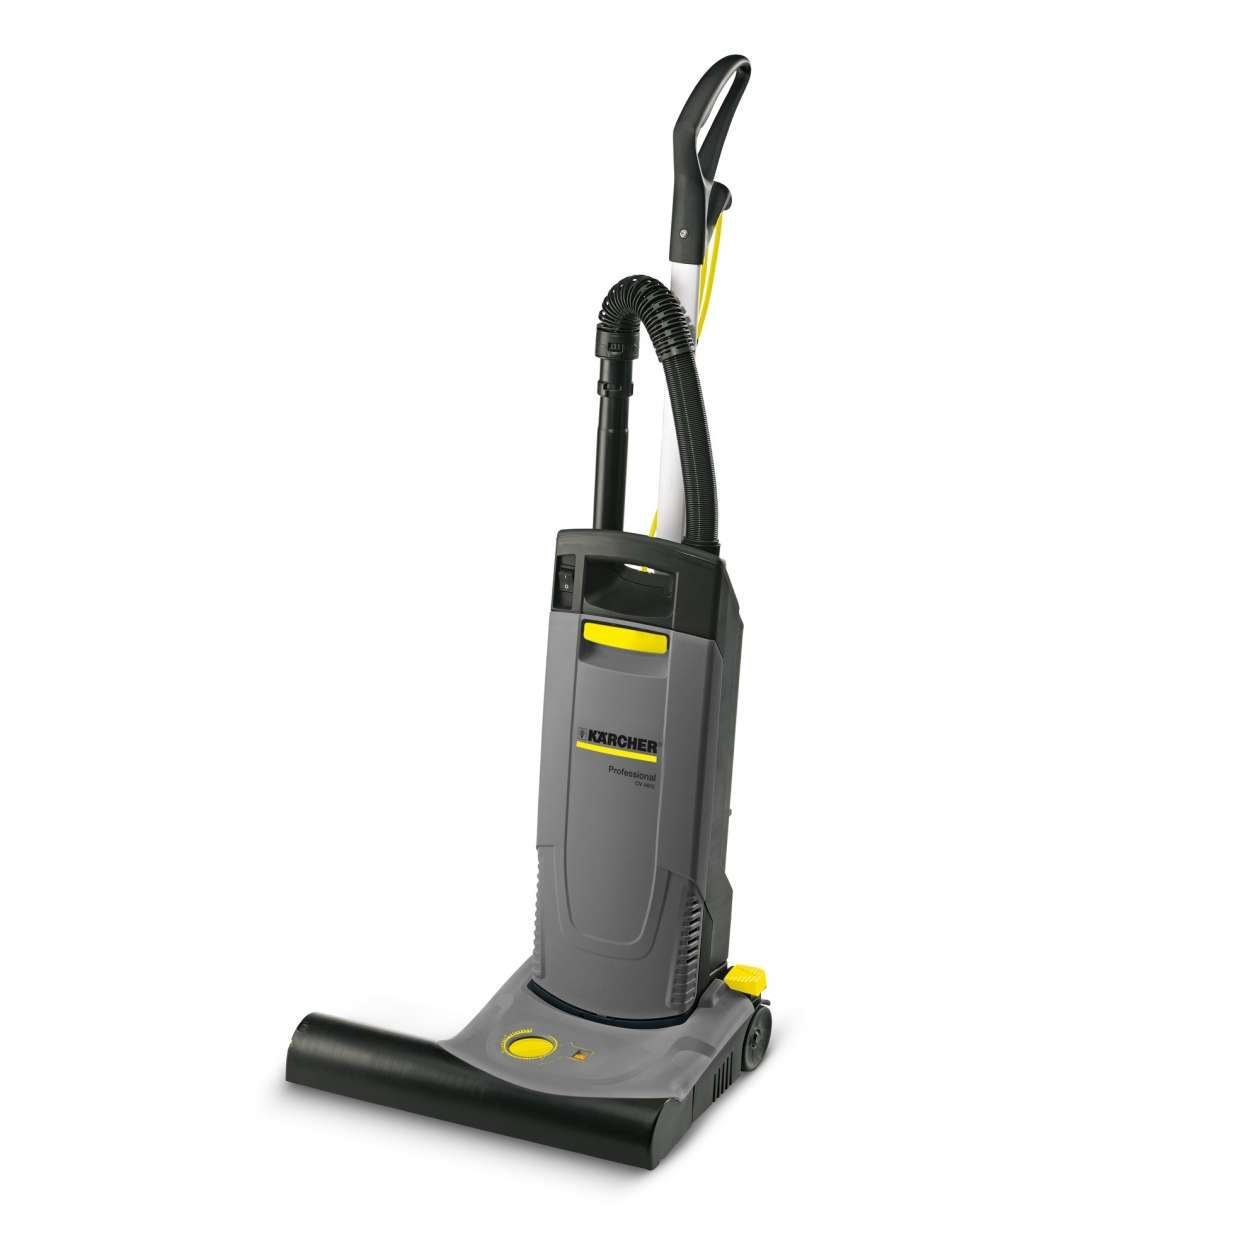 Karcher Cv48 2 Upright Vacuum Powervac Cleaning